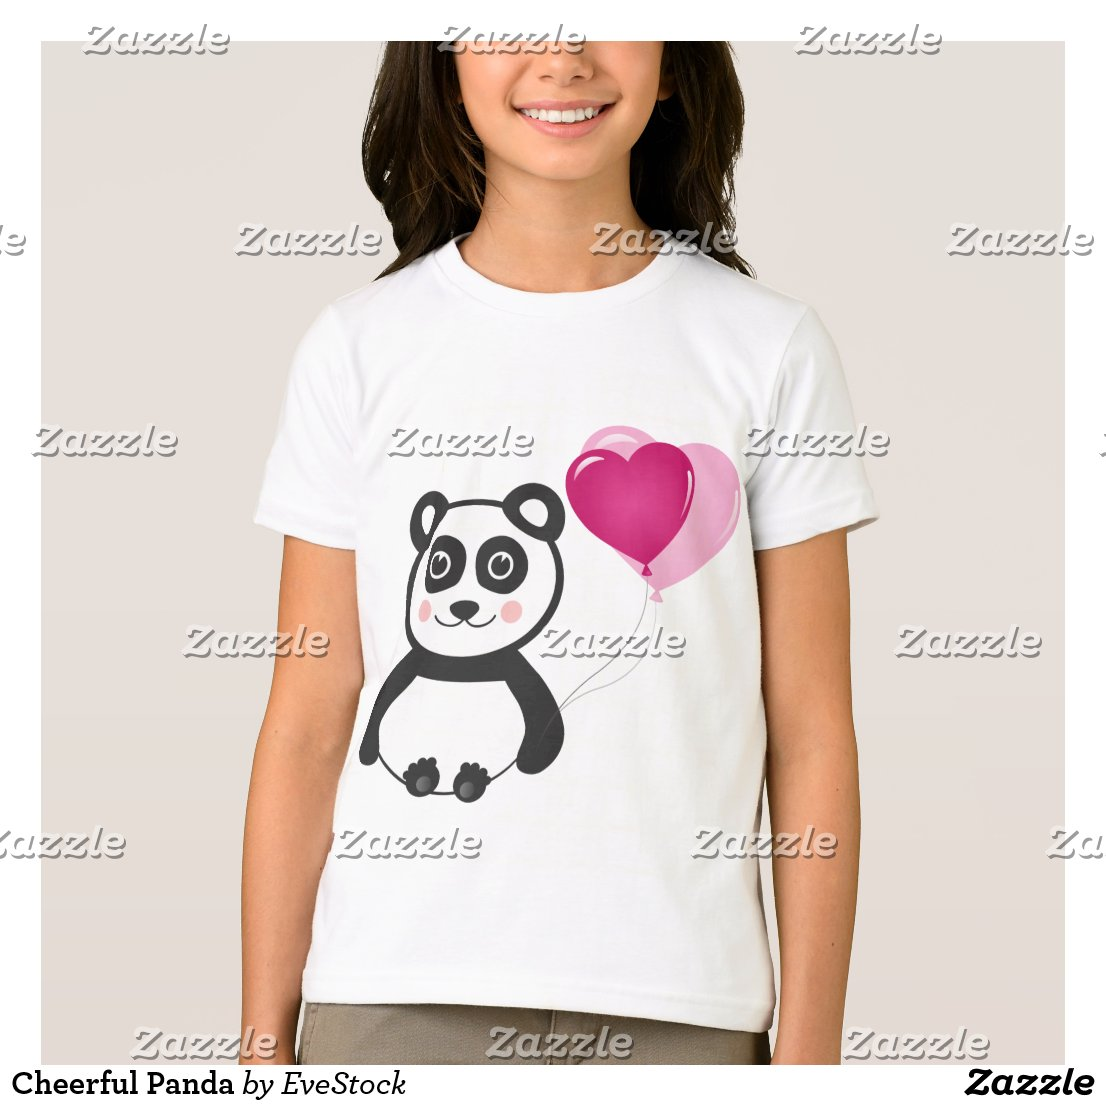 Cheerful Panda T-Shirt